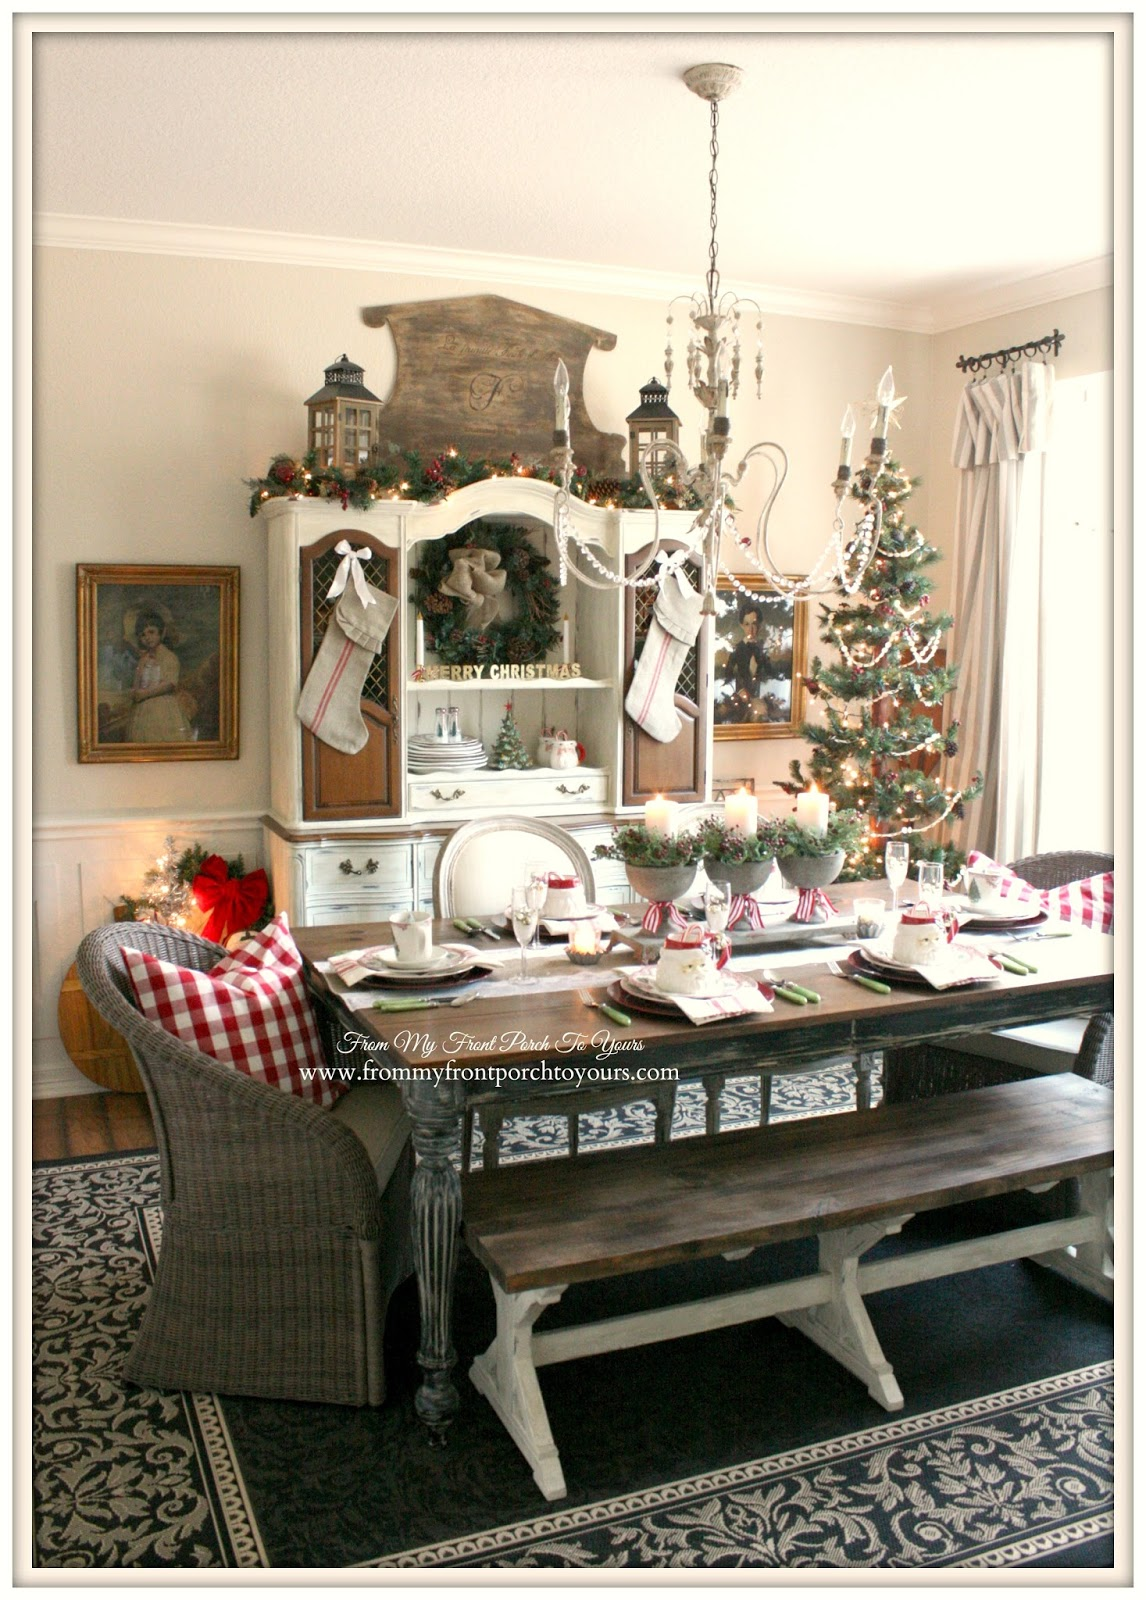 From my front porch to yours french farmhouse vintage for Front room dining room ideas